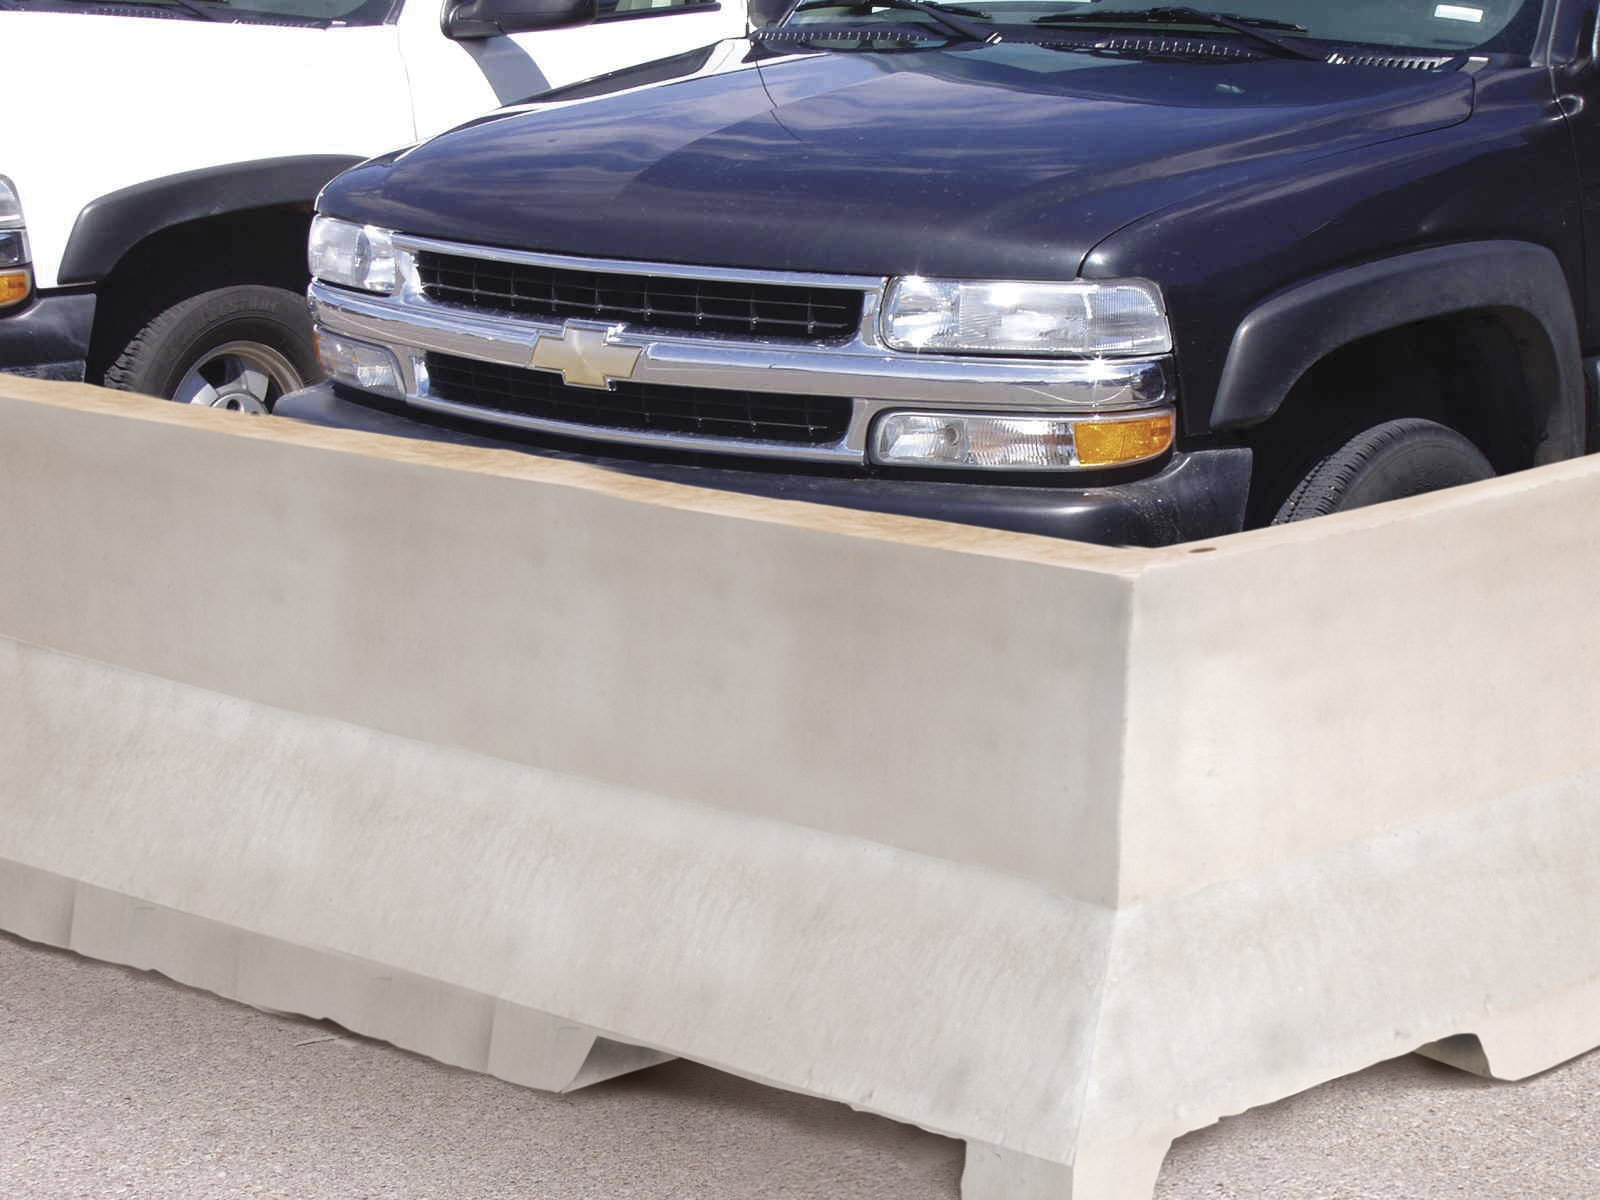 Precast Concrete Traffic Barrier In Parking Lot